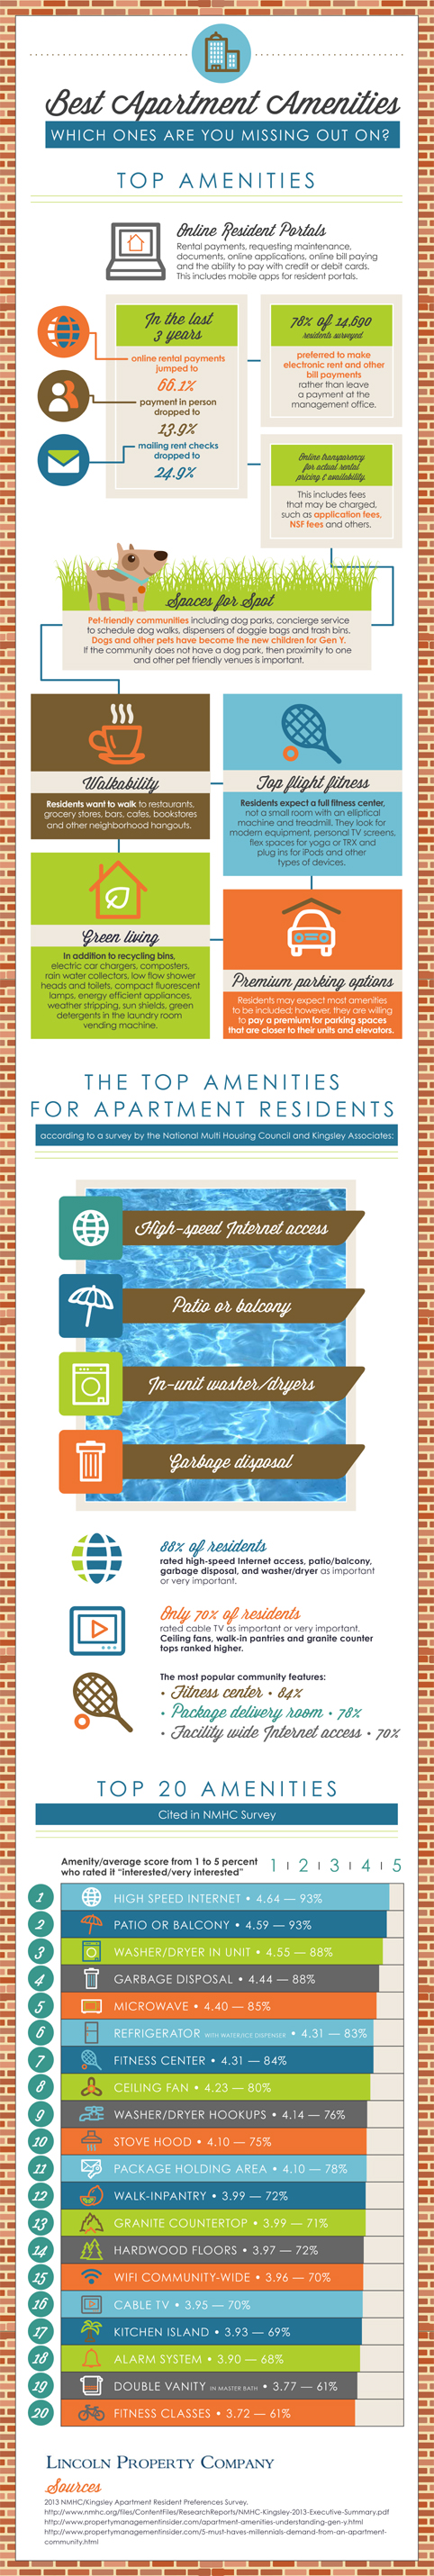 top-amenities-small